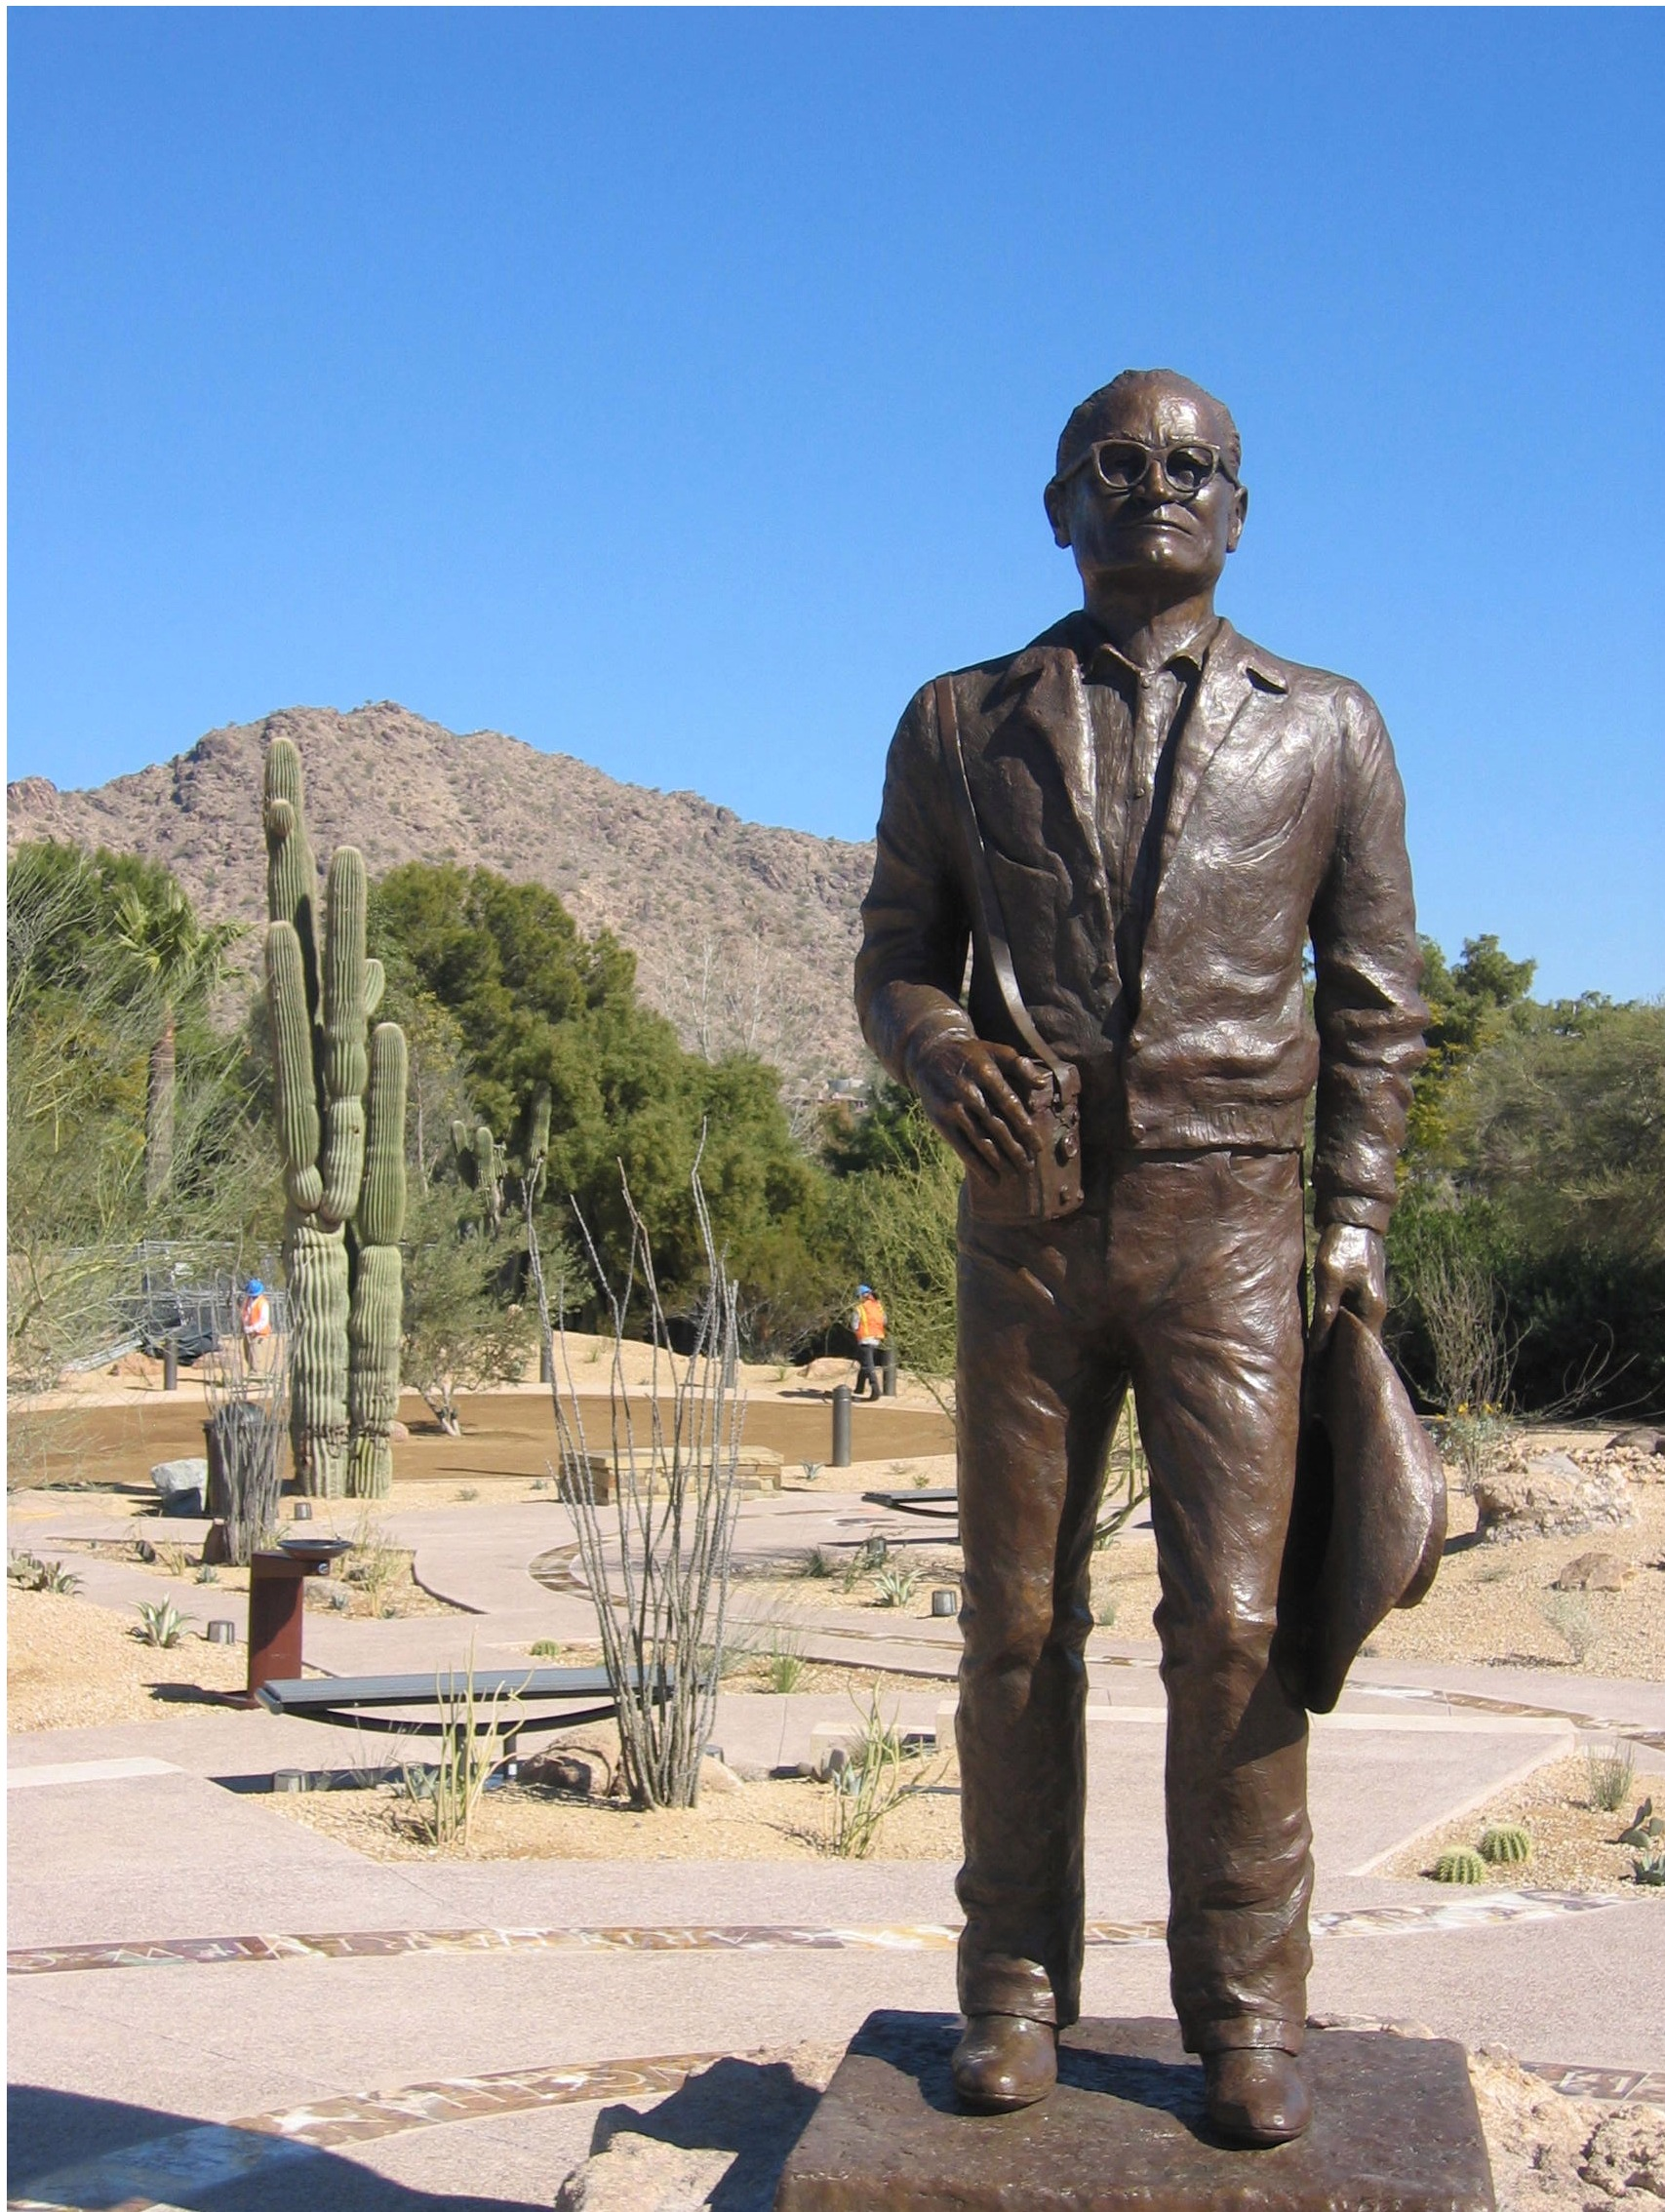 Barry Goldwater by Kathryn Gasser